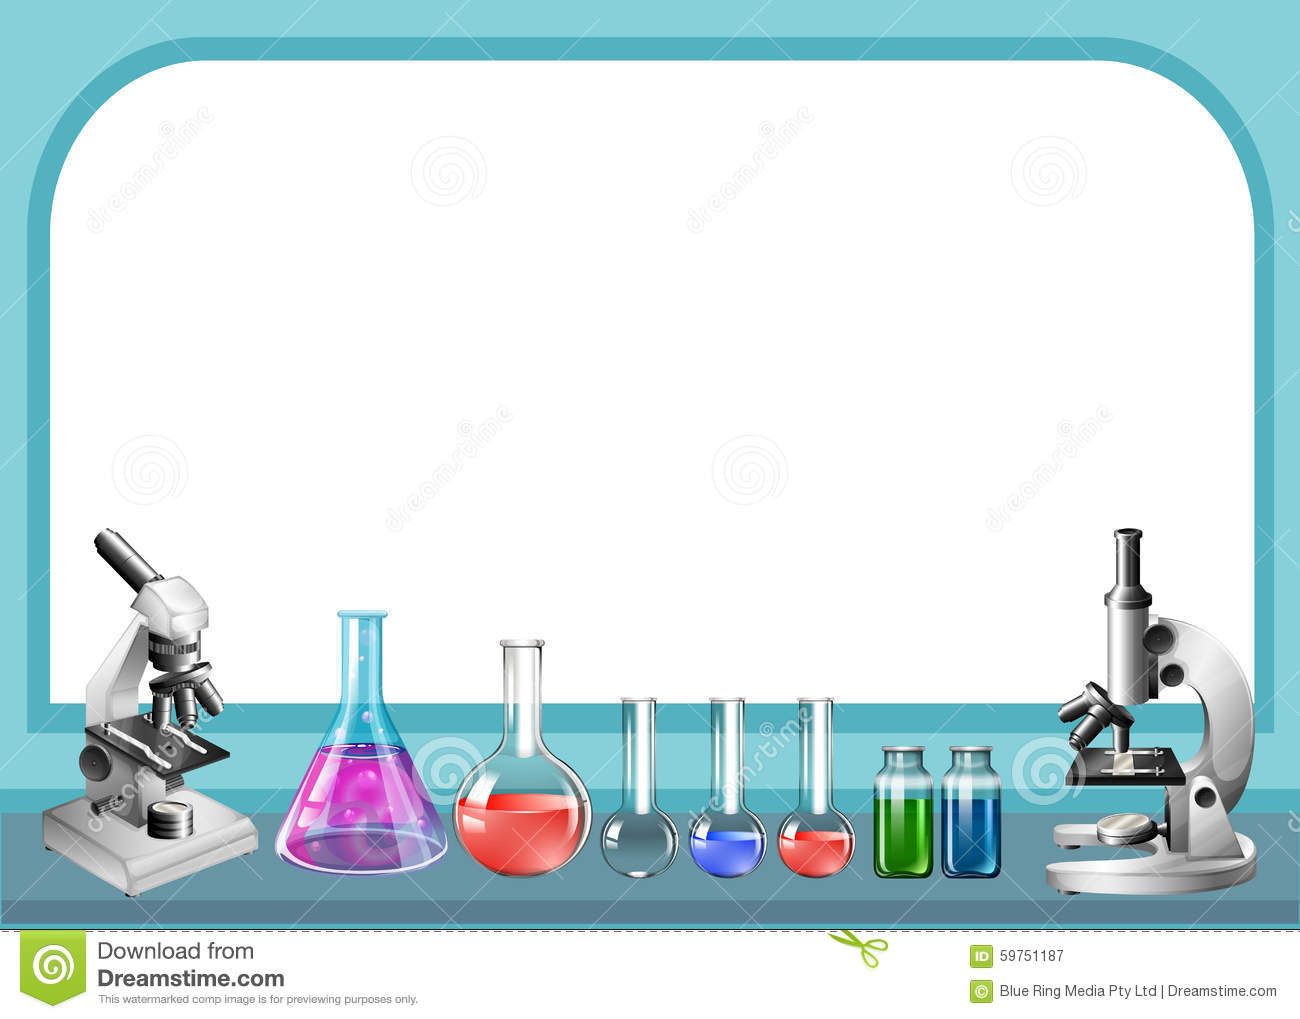 Stock Illustration Science Tool Frame Illustration Image59751187 on Lab Equipment